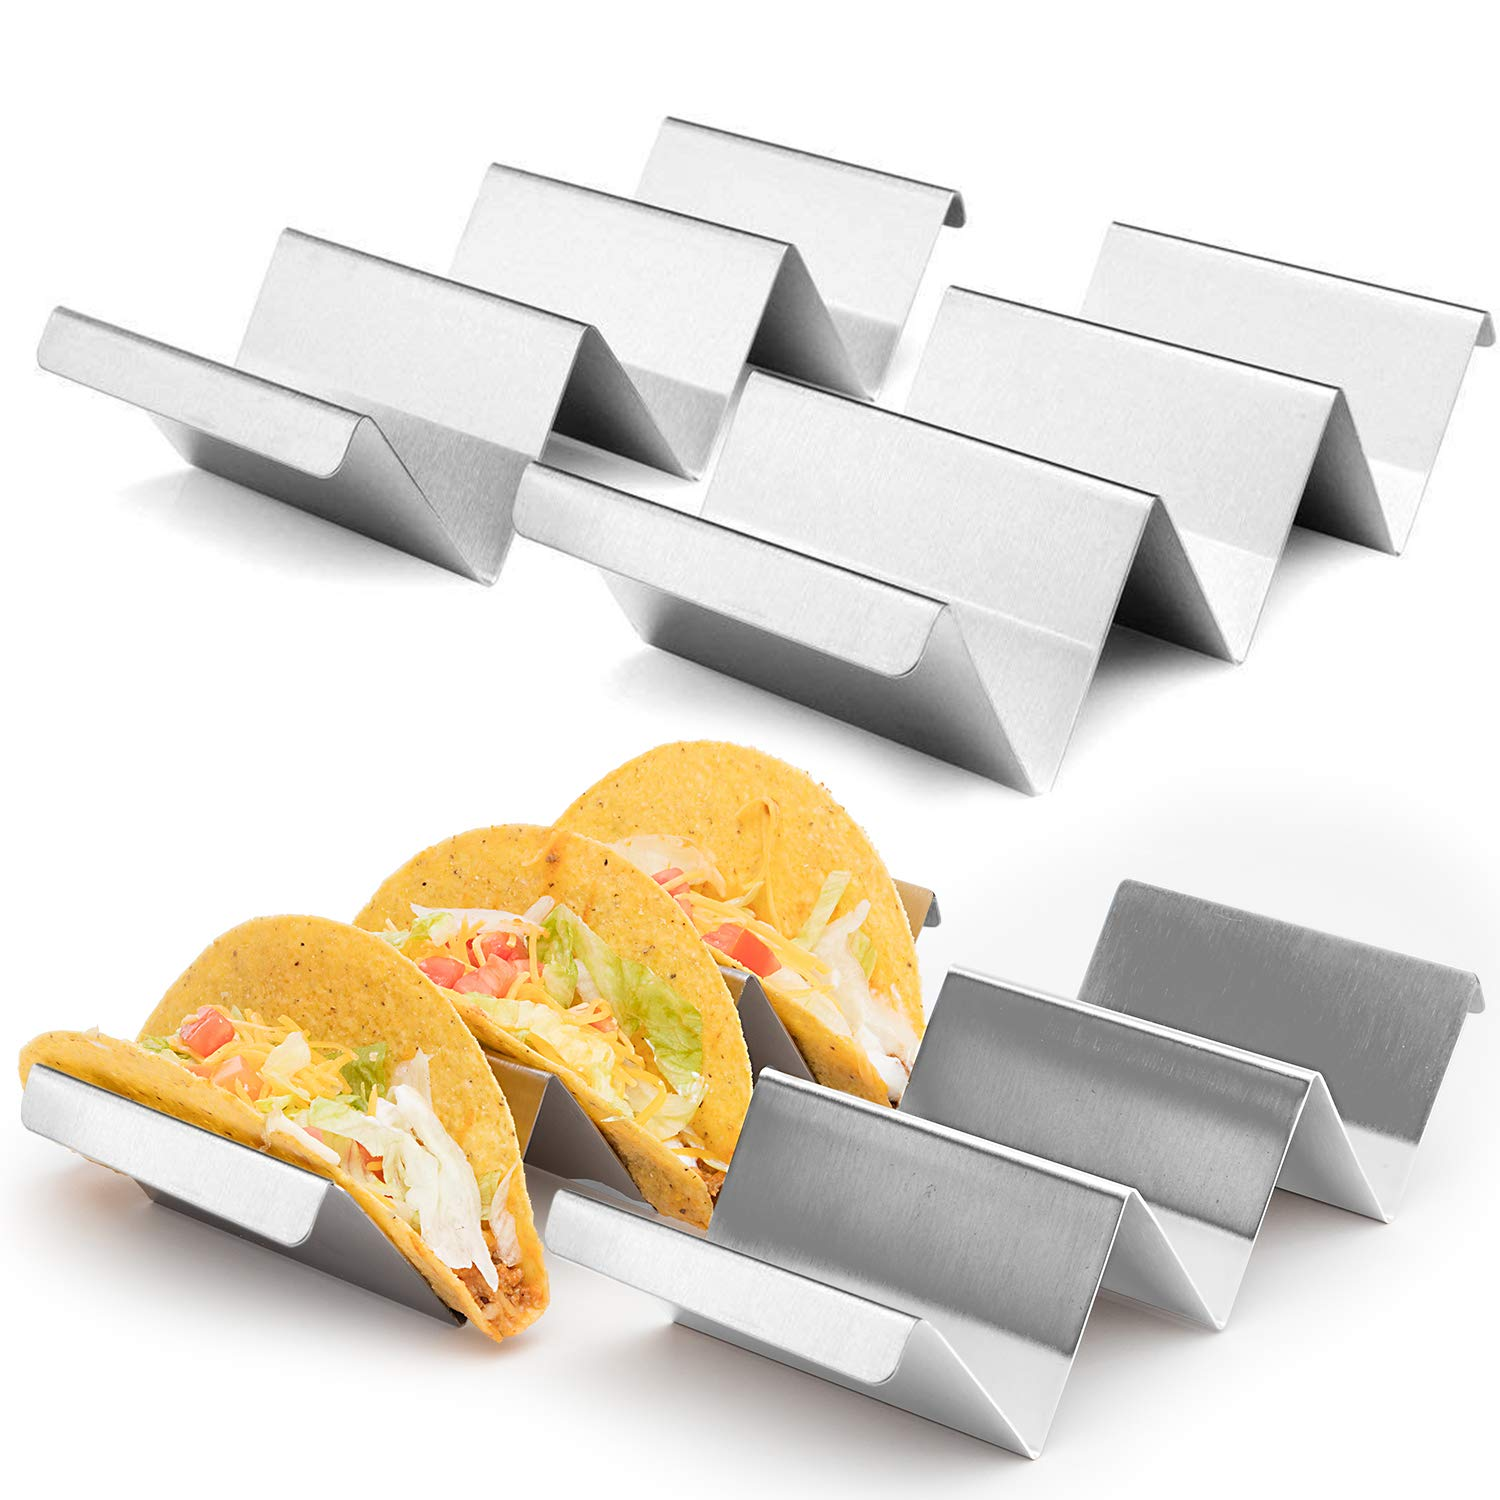 4-Pack Stainless Steel Taco Holder Set, 8'' x 4'' x 2'' Metal Taco Holders with Handles. Convenient Taco Serving Rack for Parties, Picnics, Taco Tuesdays, and Family Meals. Hard & Soft Shell Taco Holders by California Basics